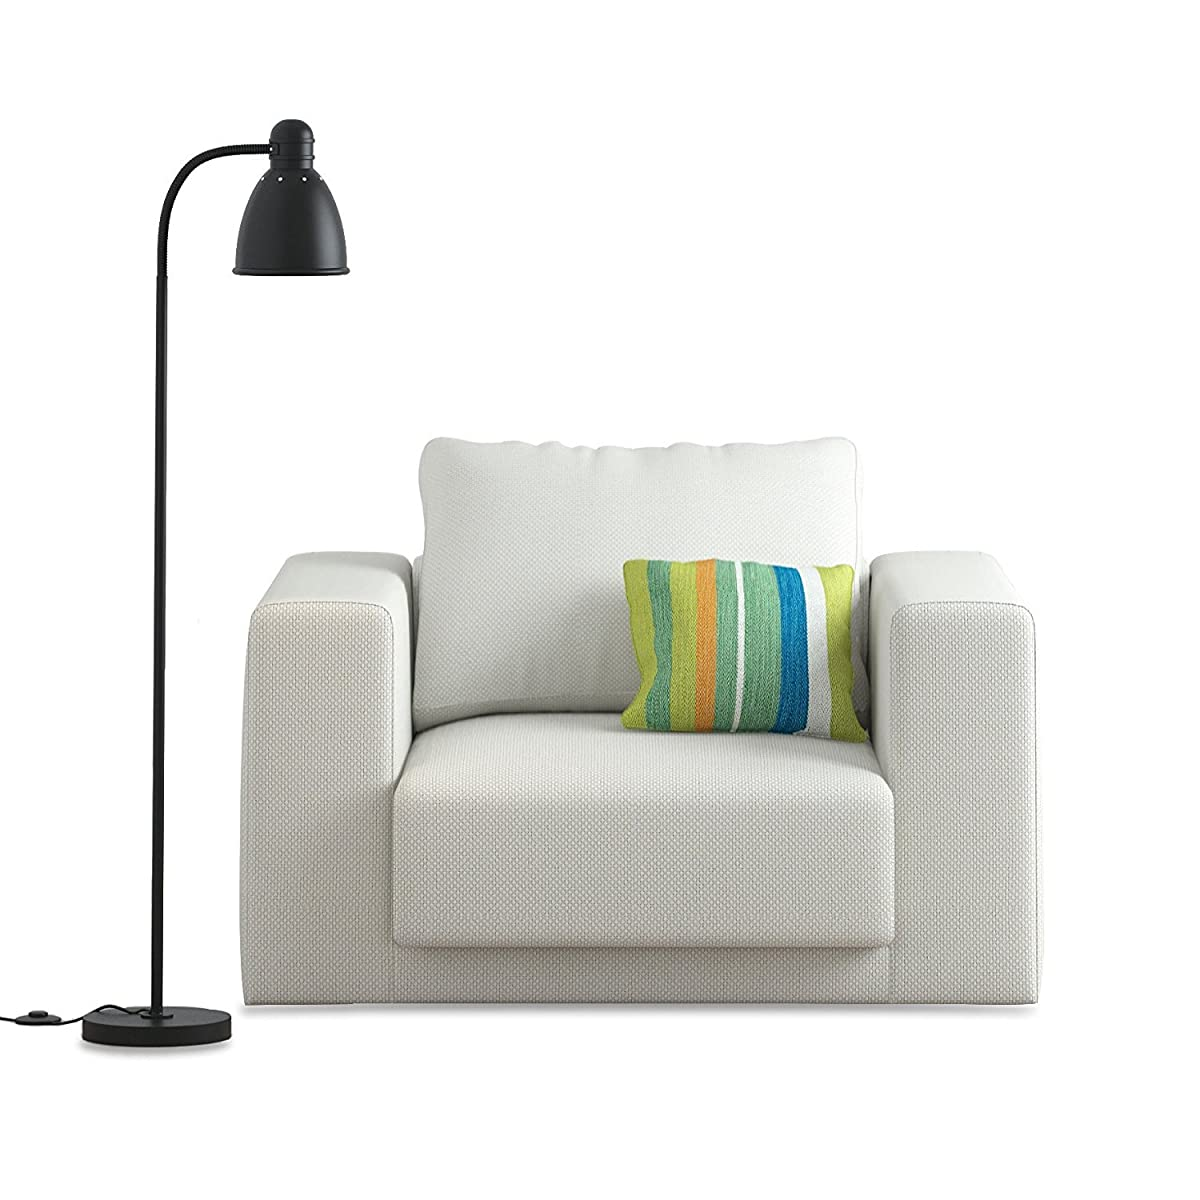 WALLNITURE Adjustable Reading Floor Lamp with Foot Control On Off Switch Black